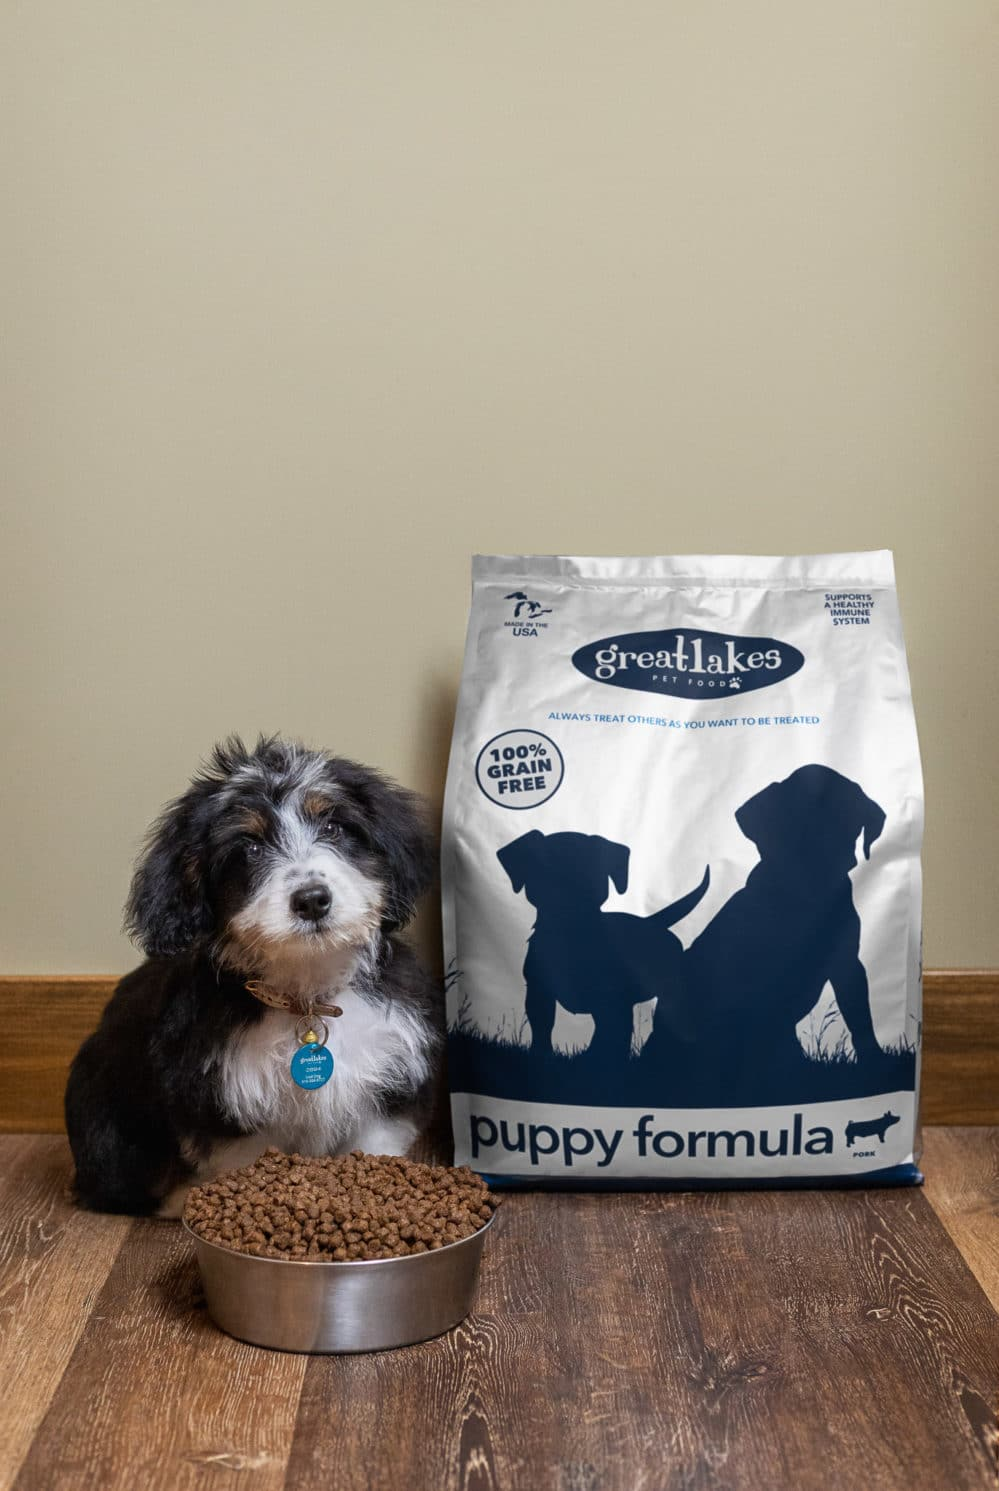 Small dog with Great Lakes puppy formula